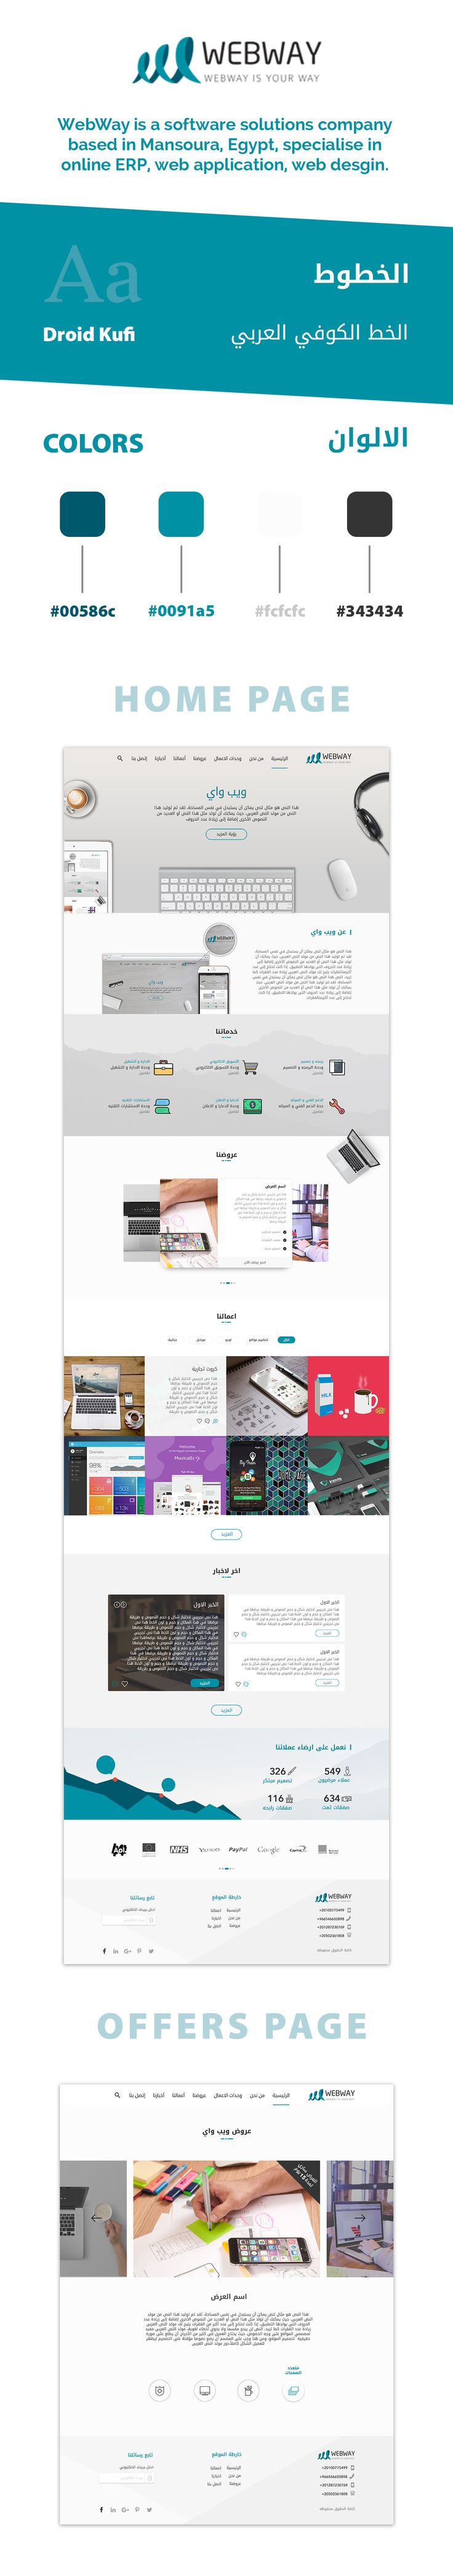 """Check out my @Behance project: """"WebWay Corp Site Redesign"""" https://www.behance.net/gallery/45895419/WebWay-Corp-Site-Redesign"""